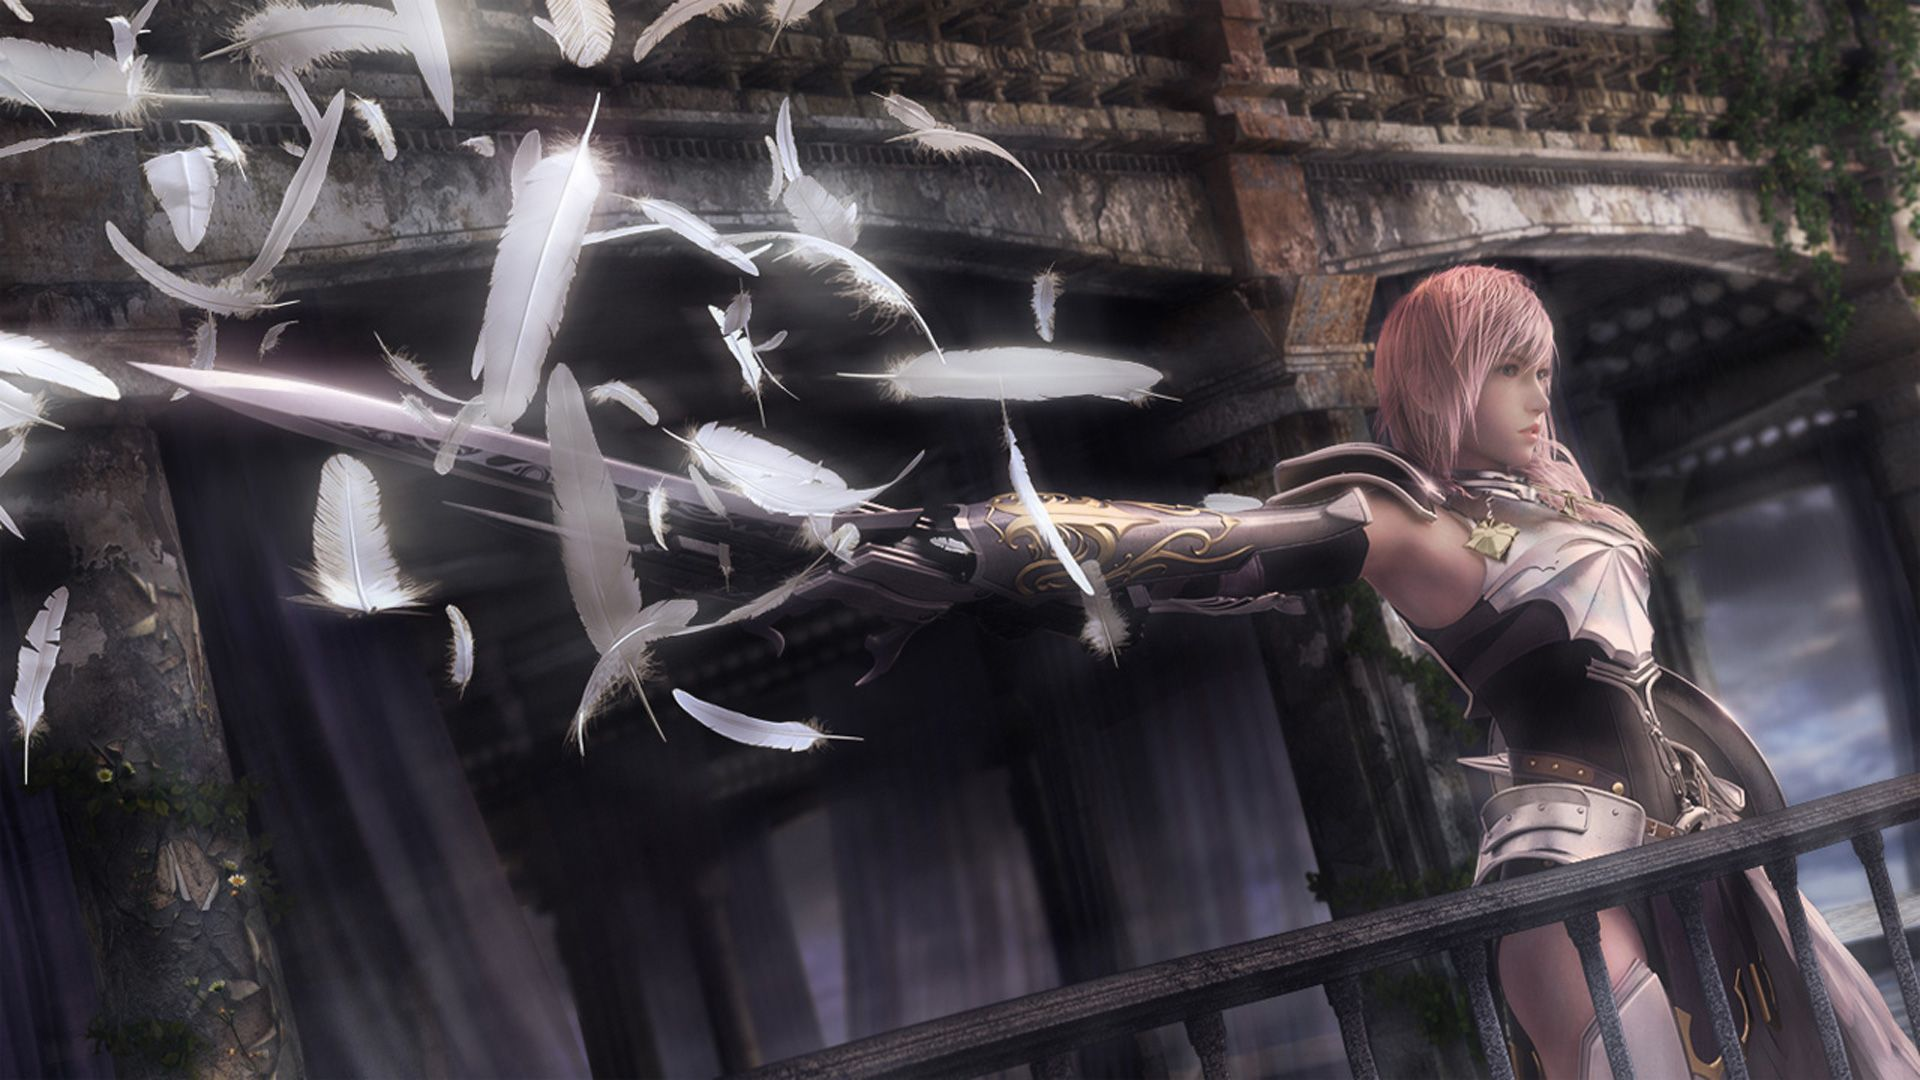 17 Cute Final Fantasy Xiii 2 Wallpapers In High Quality Lea Barkway